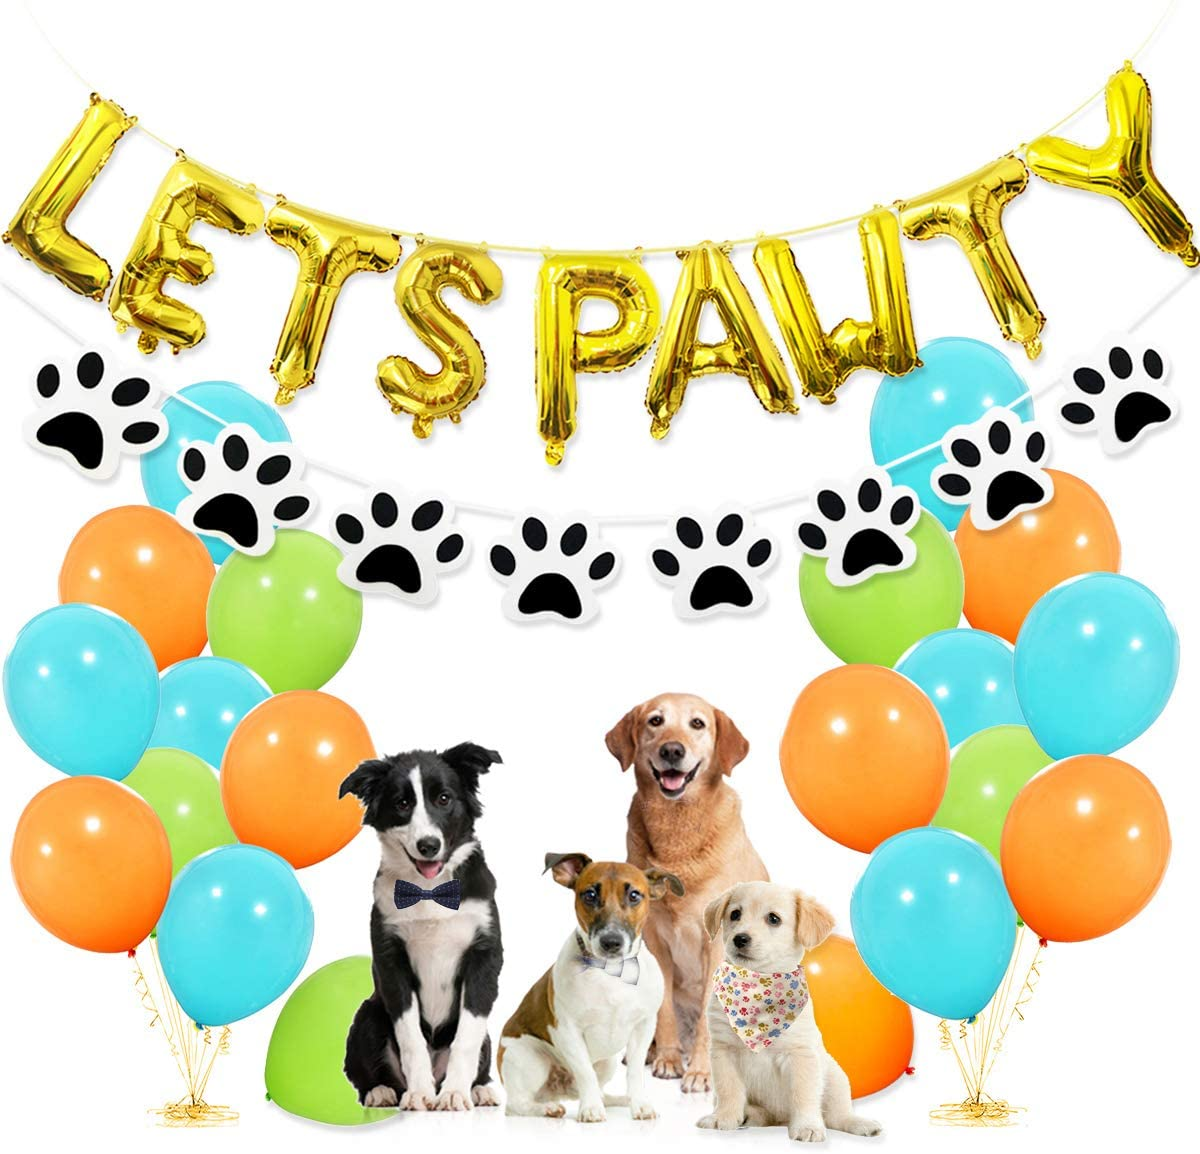 decorations for dog Gotcha Day